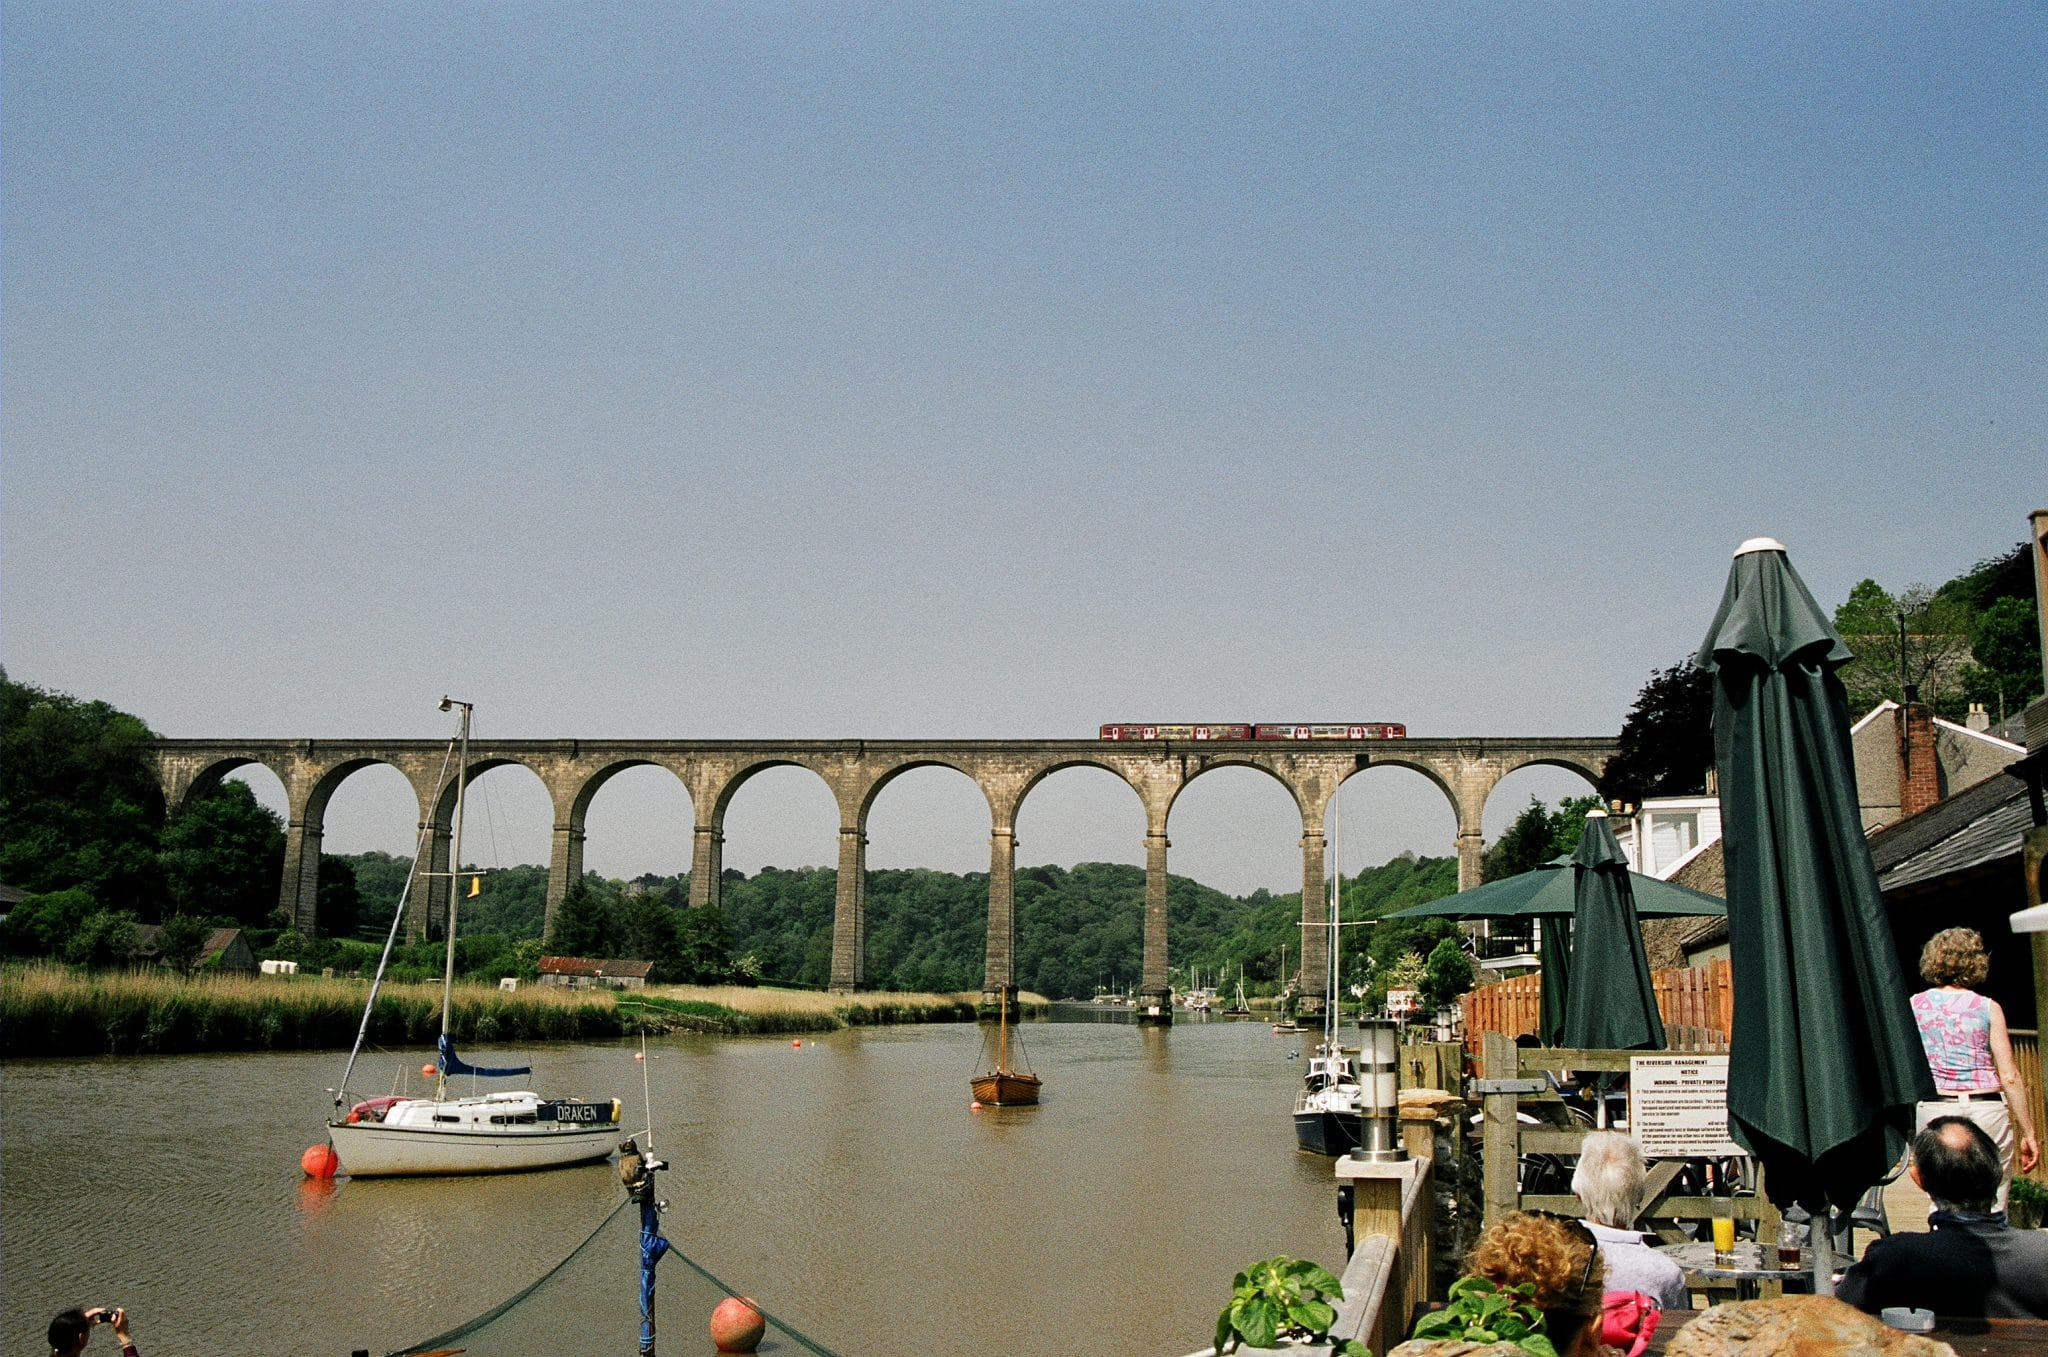 Photo of the Tamara River at Calstock with the Calstock viaduct in the background